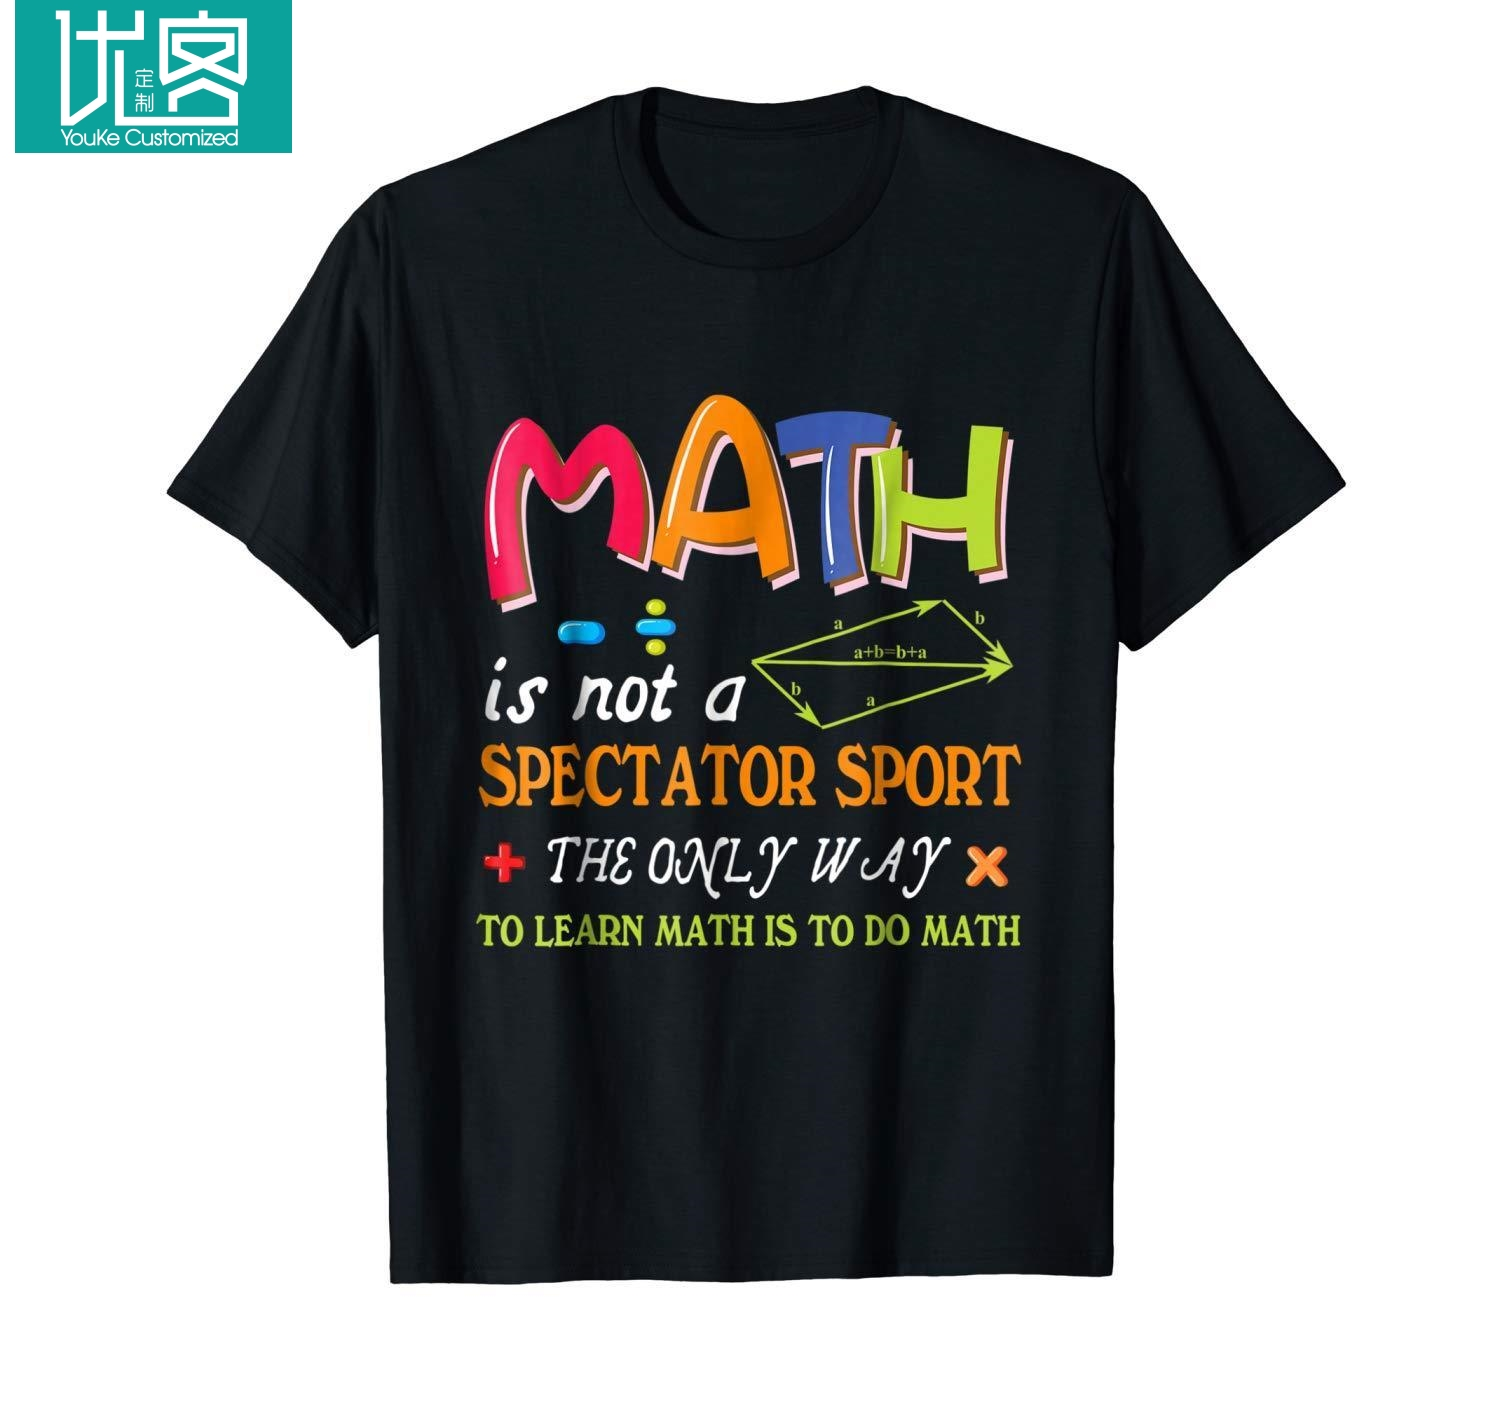 Math Is Not Spectator Sport Only Way To Learn Math Is To Do Math Black T-Shirt Cool Casual pride t shirt men Unisex Fashion image